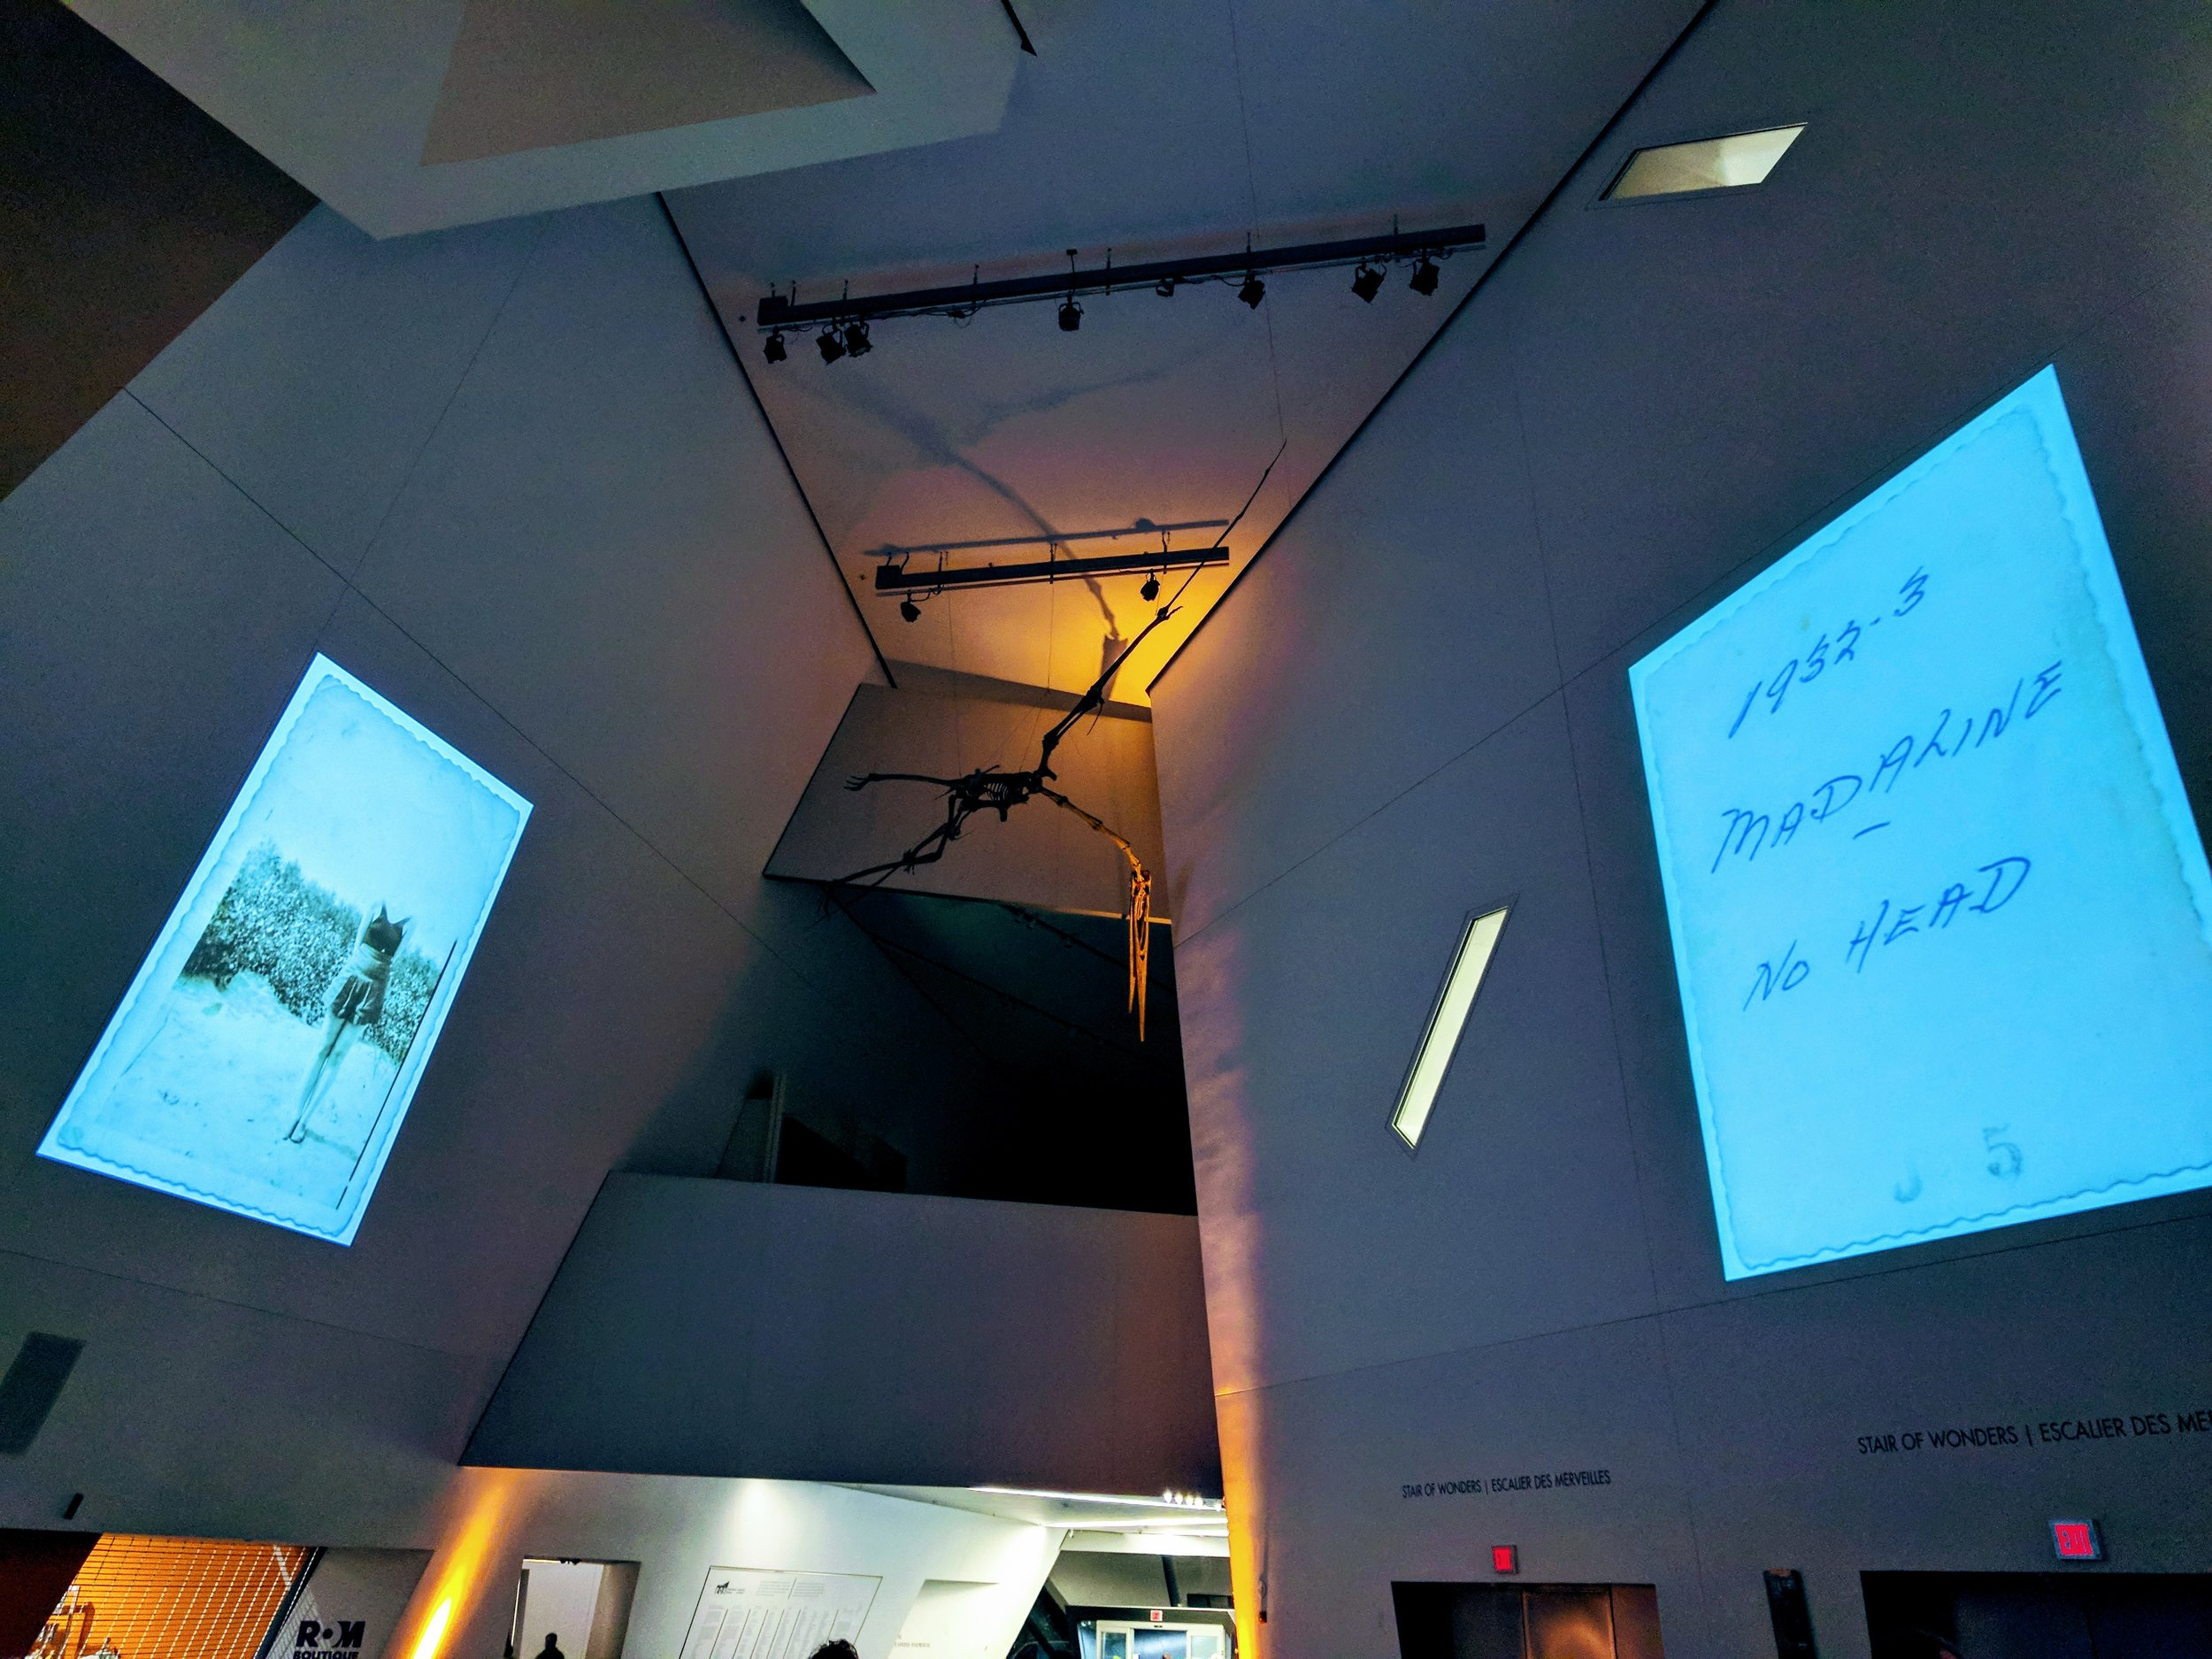 NUIT BLANCHE IMAGE PROJECTIONS AT THE ROM (J. ORPANA, 2017).